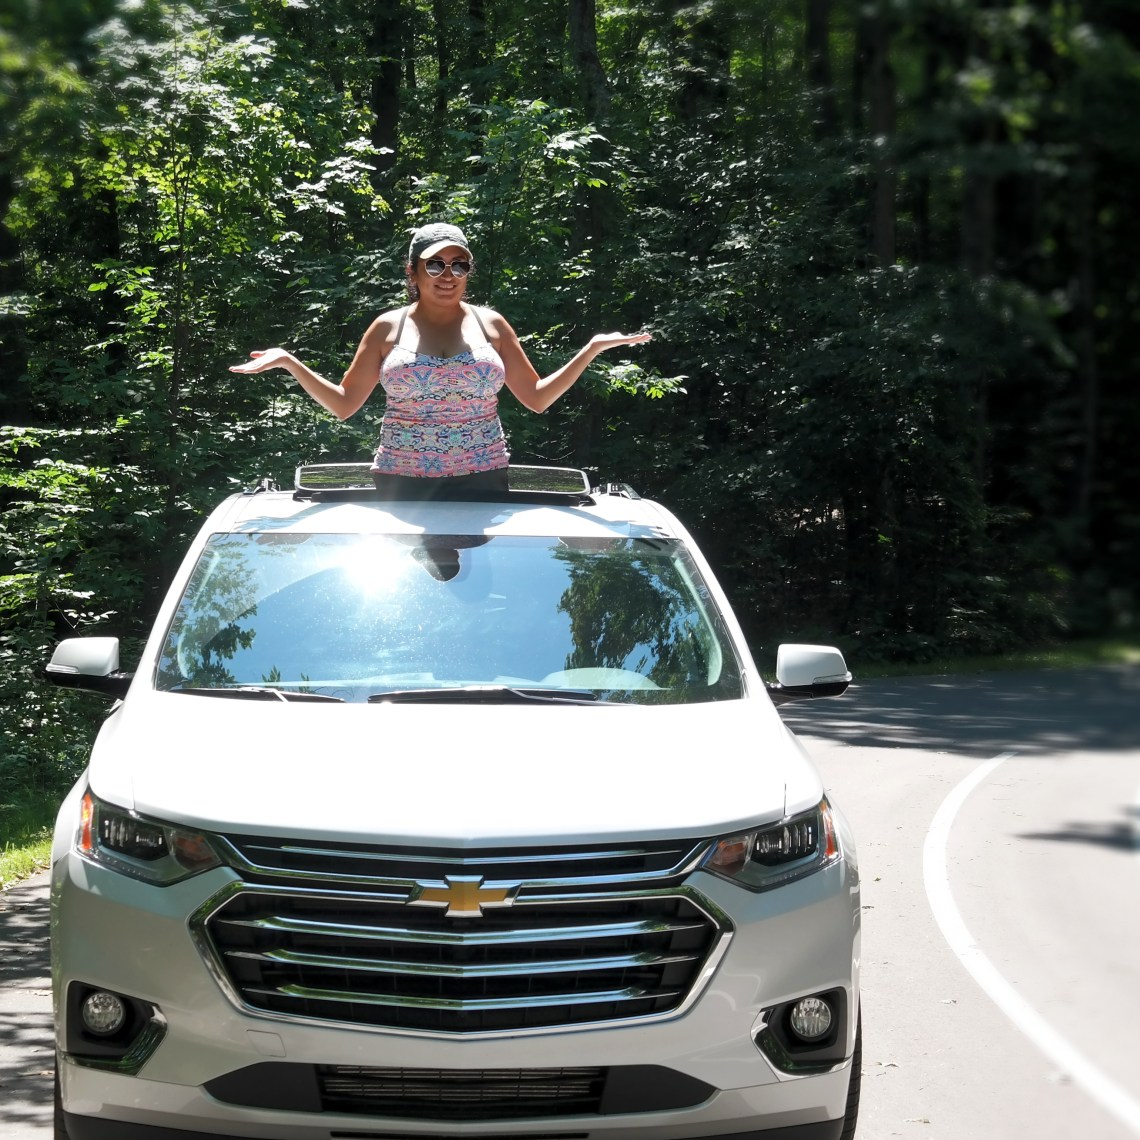 Tips for Family Road Trips in Connected Cars